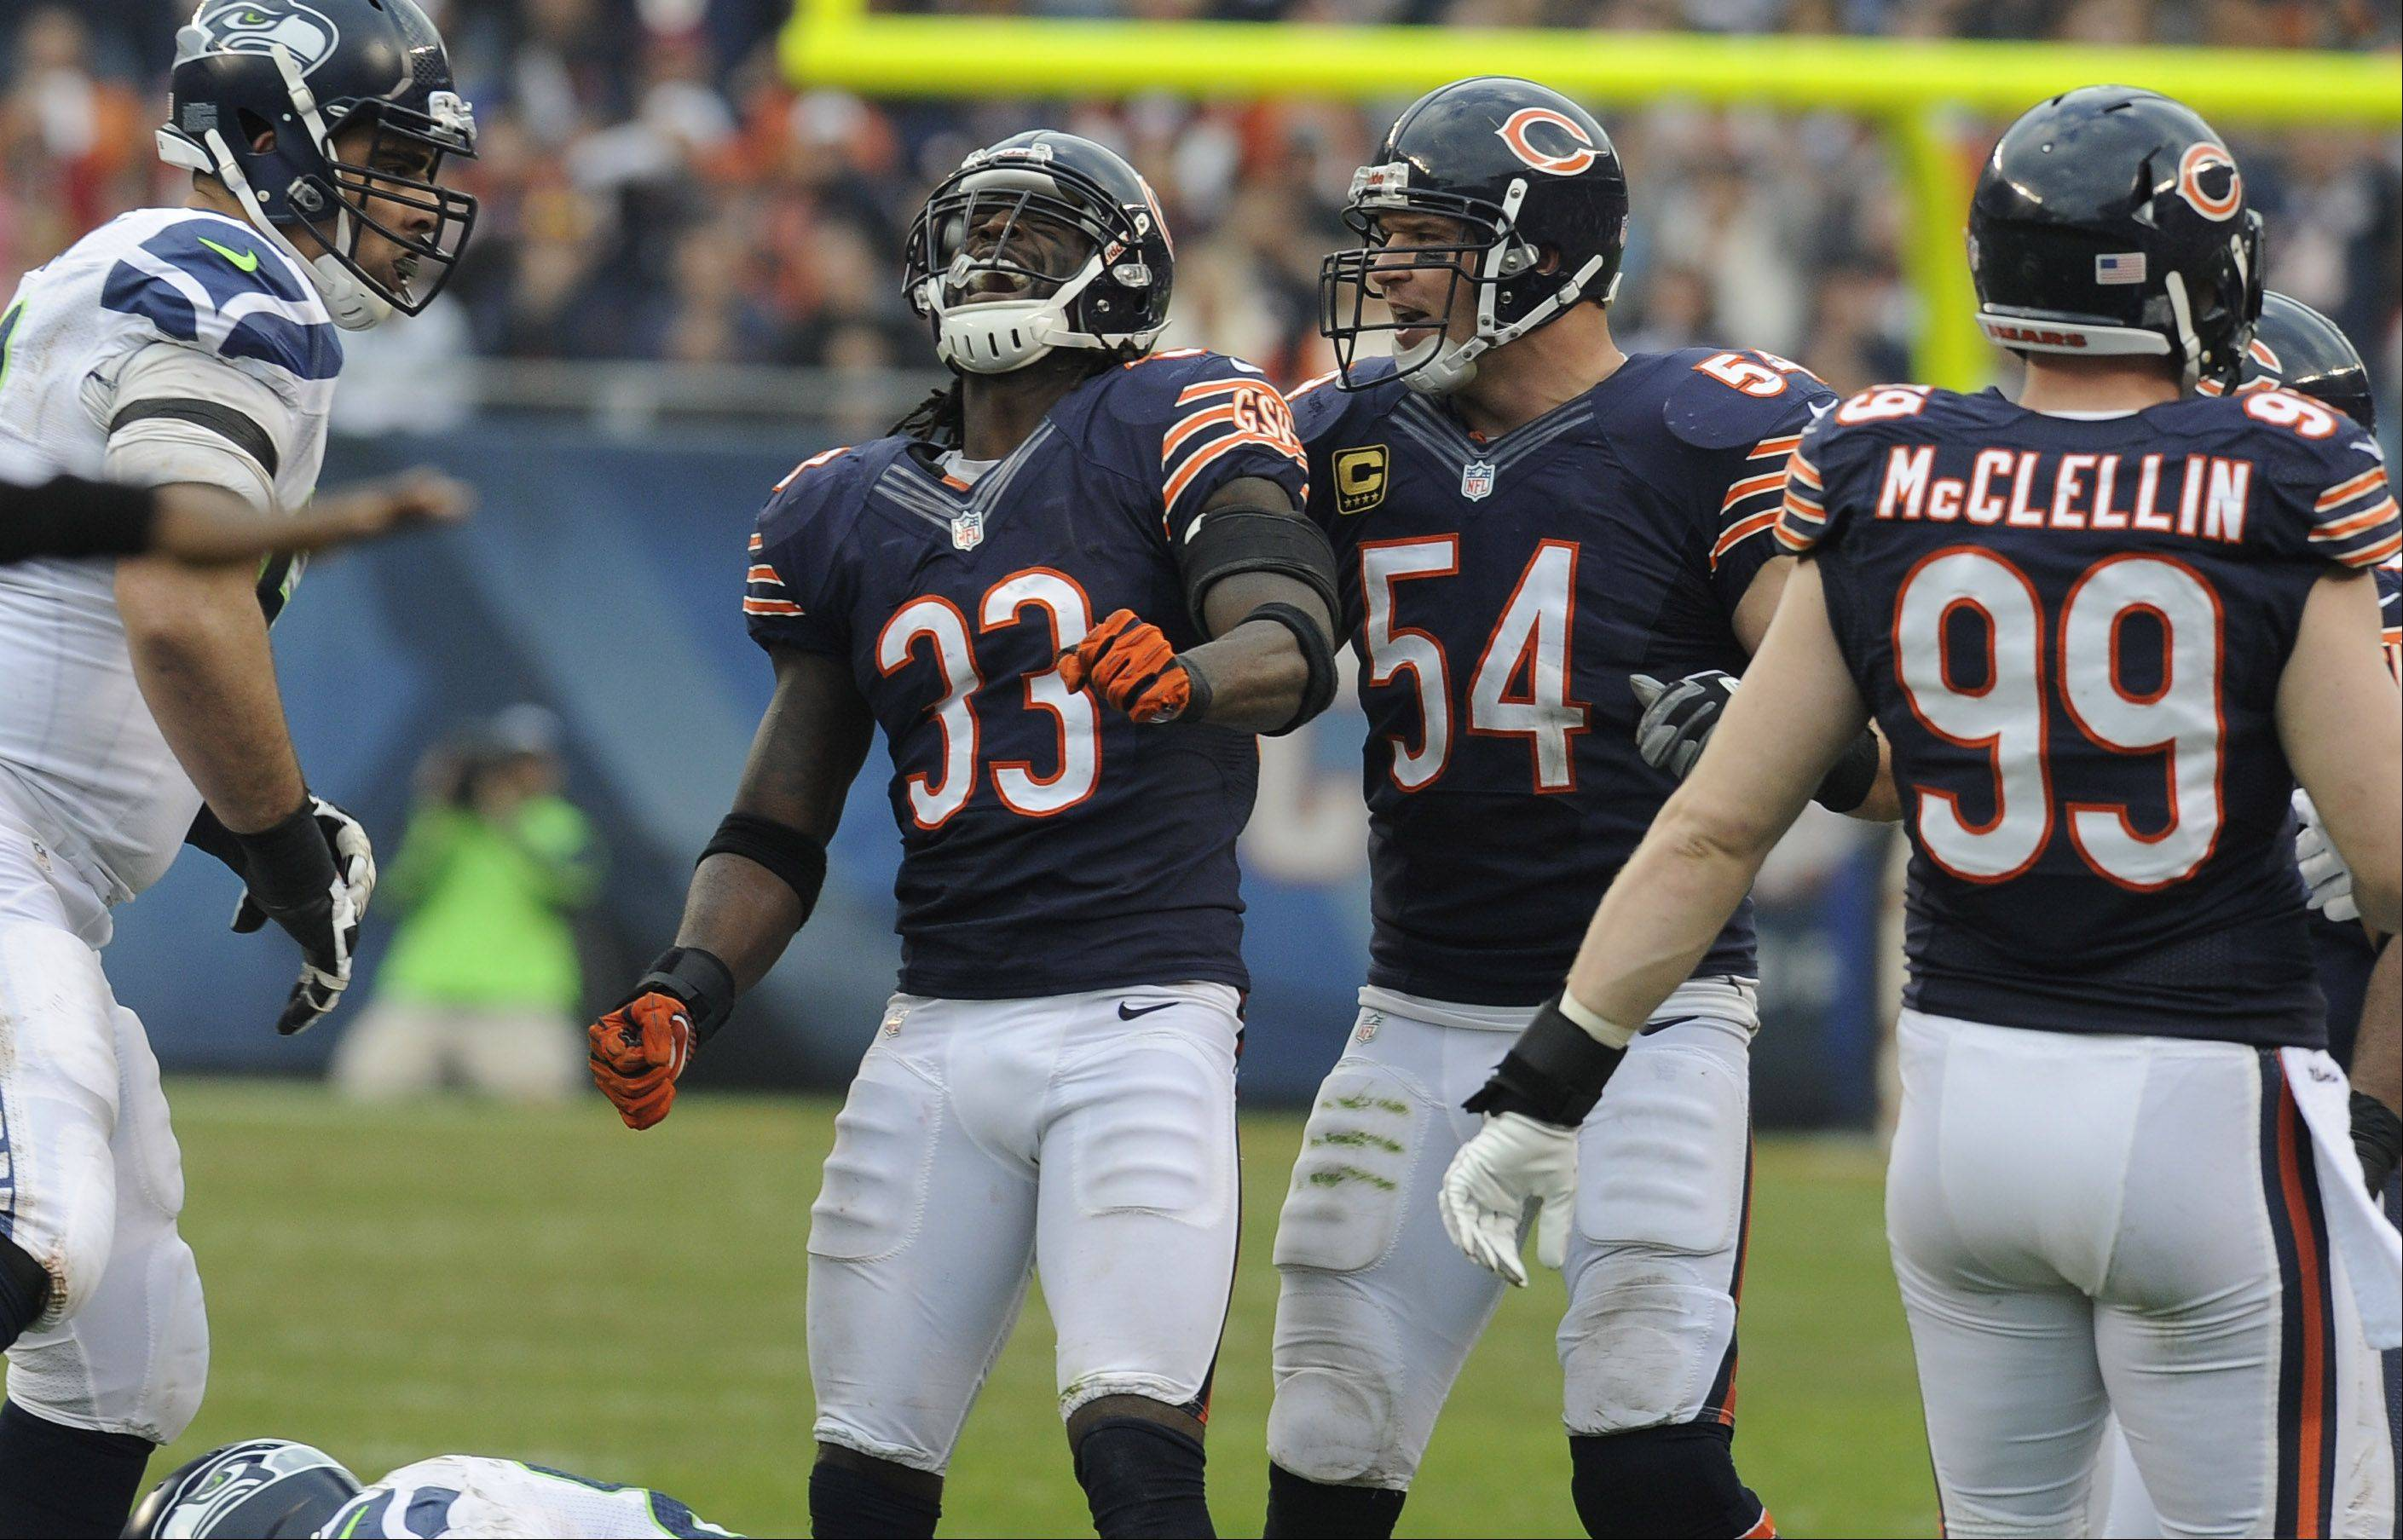 Bears linebacker Brian Urlacher suffered an injury that could sideline him for the rest of the season in the loss to the Seahawks at Soldier Field.